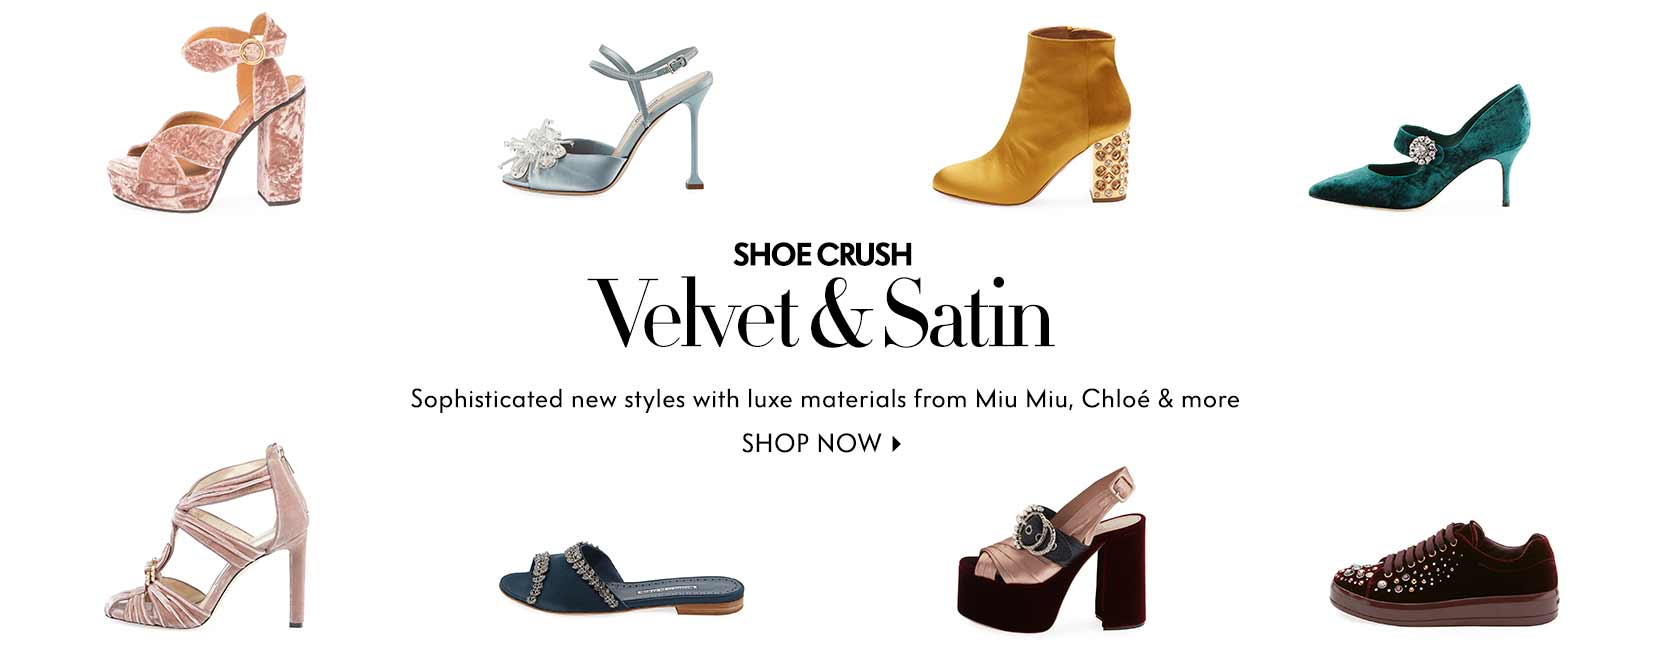 Shoe Crush Velvet & Satin Sophisticated new styles with luxe materials from Miu Miu, Chlo?? & more Shop now